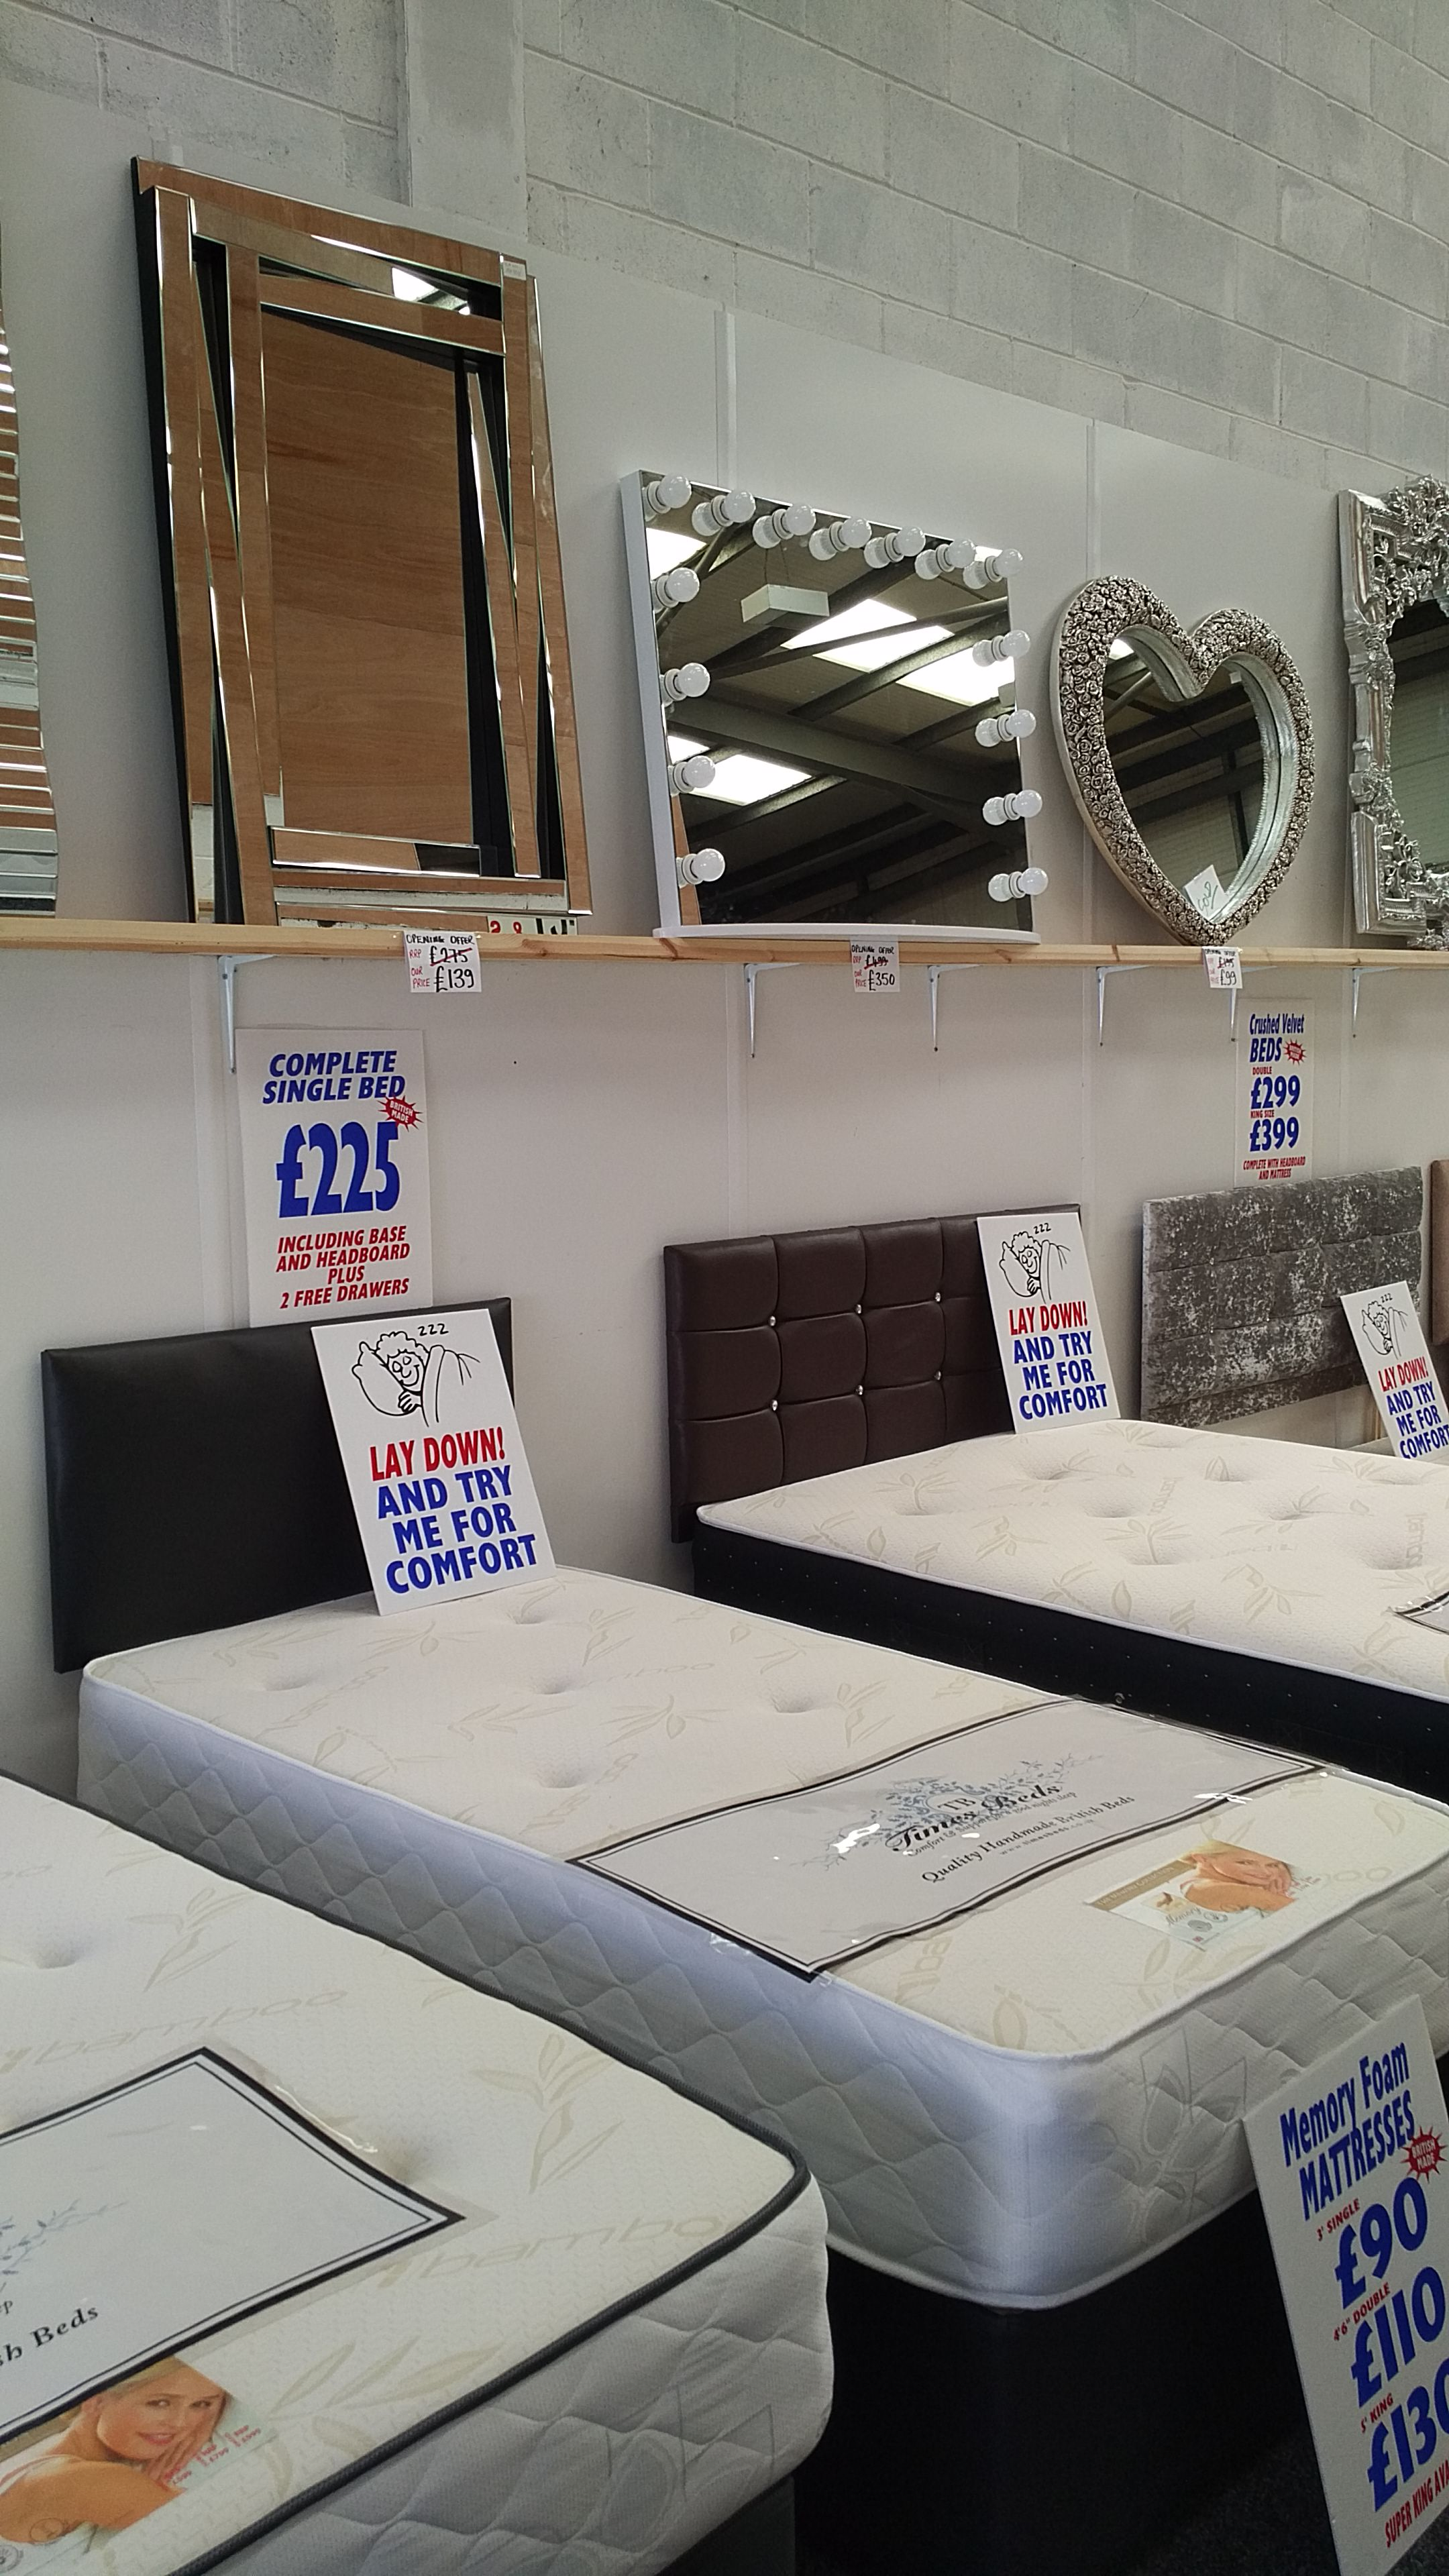 Direct beds and sofa outlet